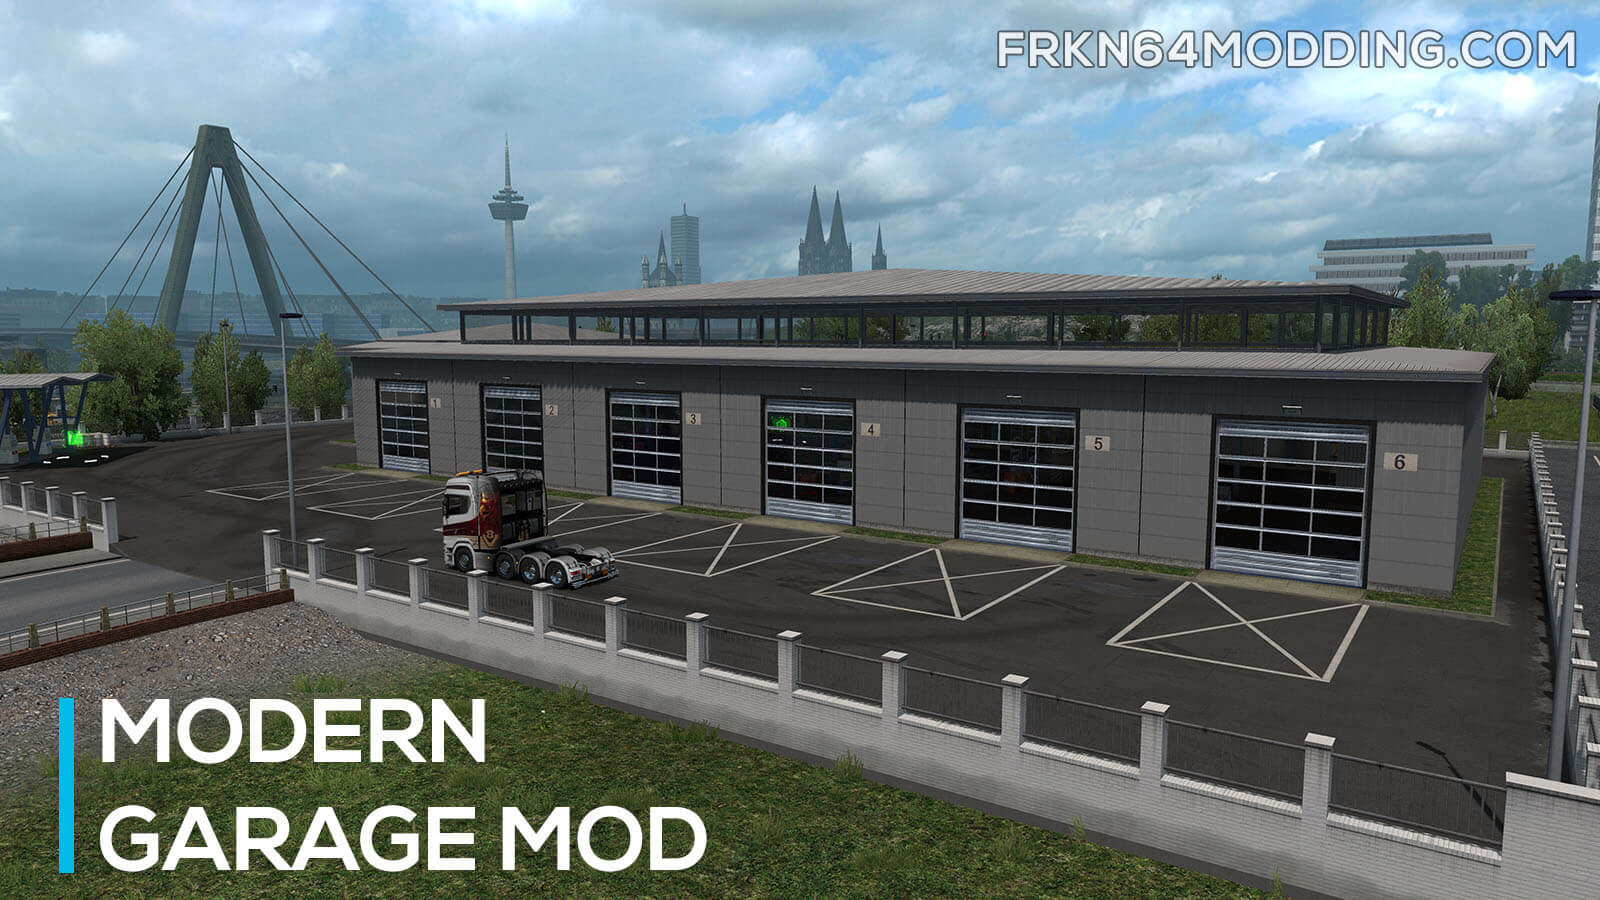 Modern Garage Mod v1.4 for ETS 2